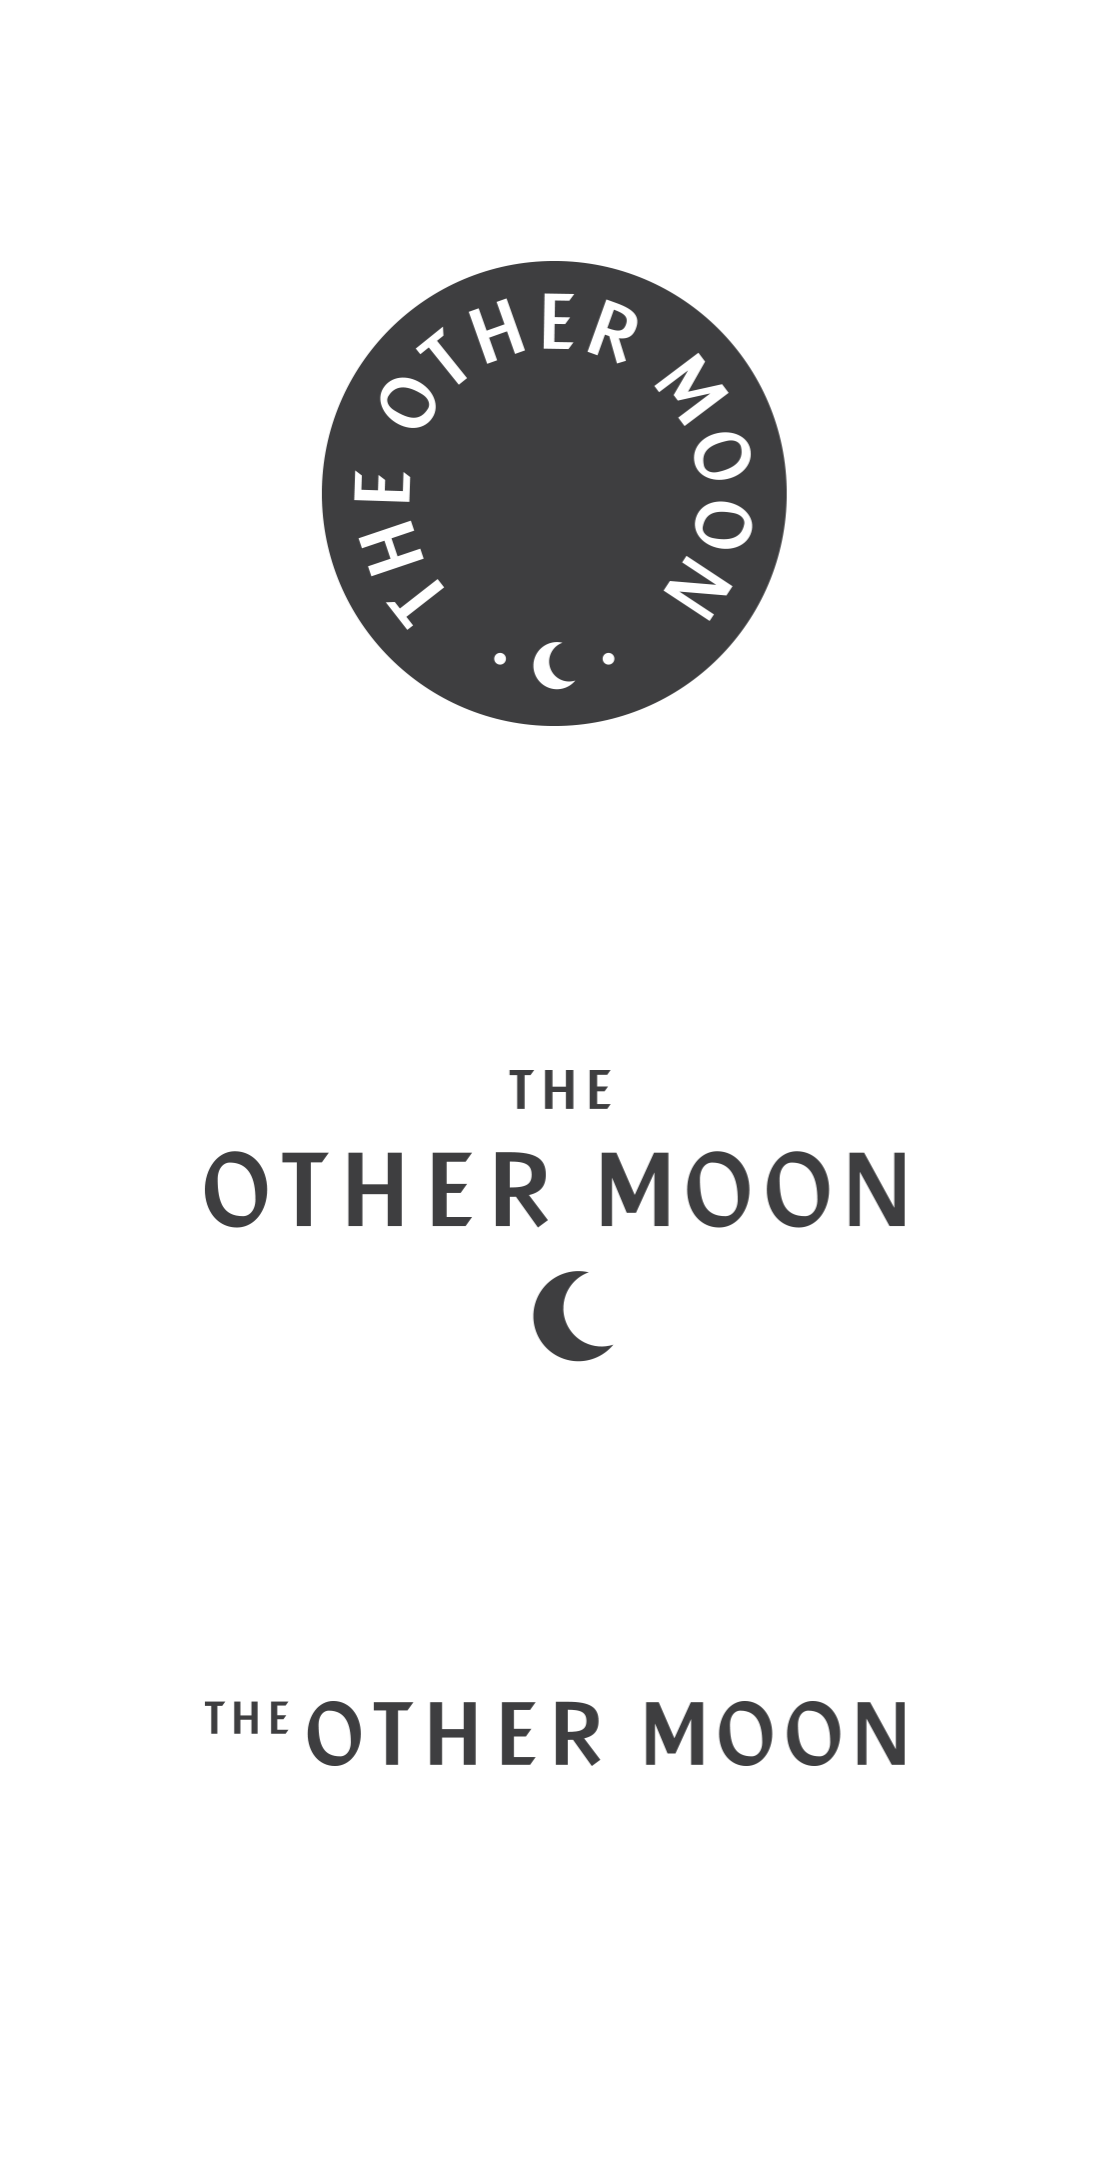 The Other Moon Logos